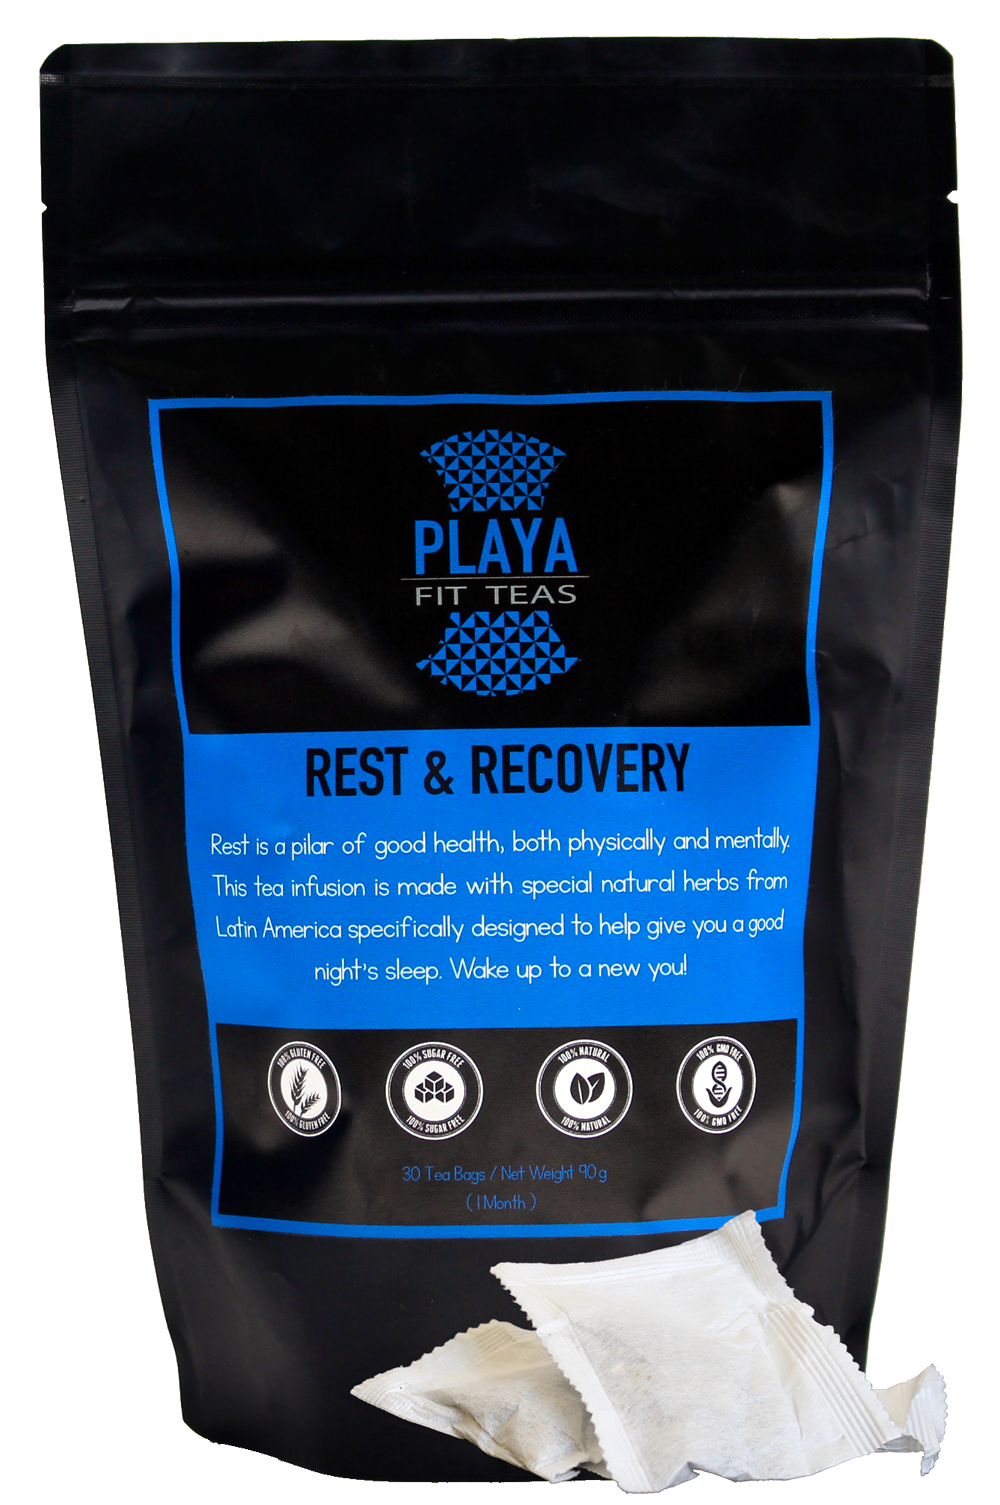 Rest & Recovery - Playa Fit Teas Chile